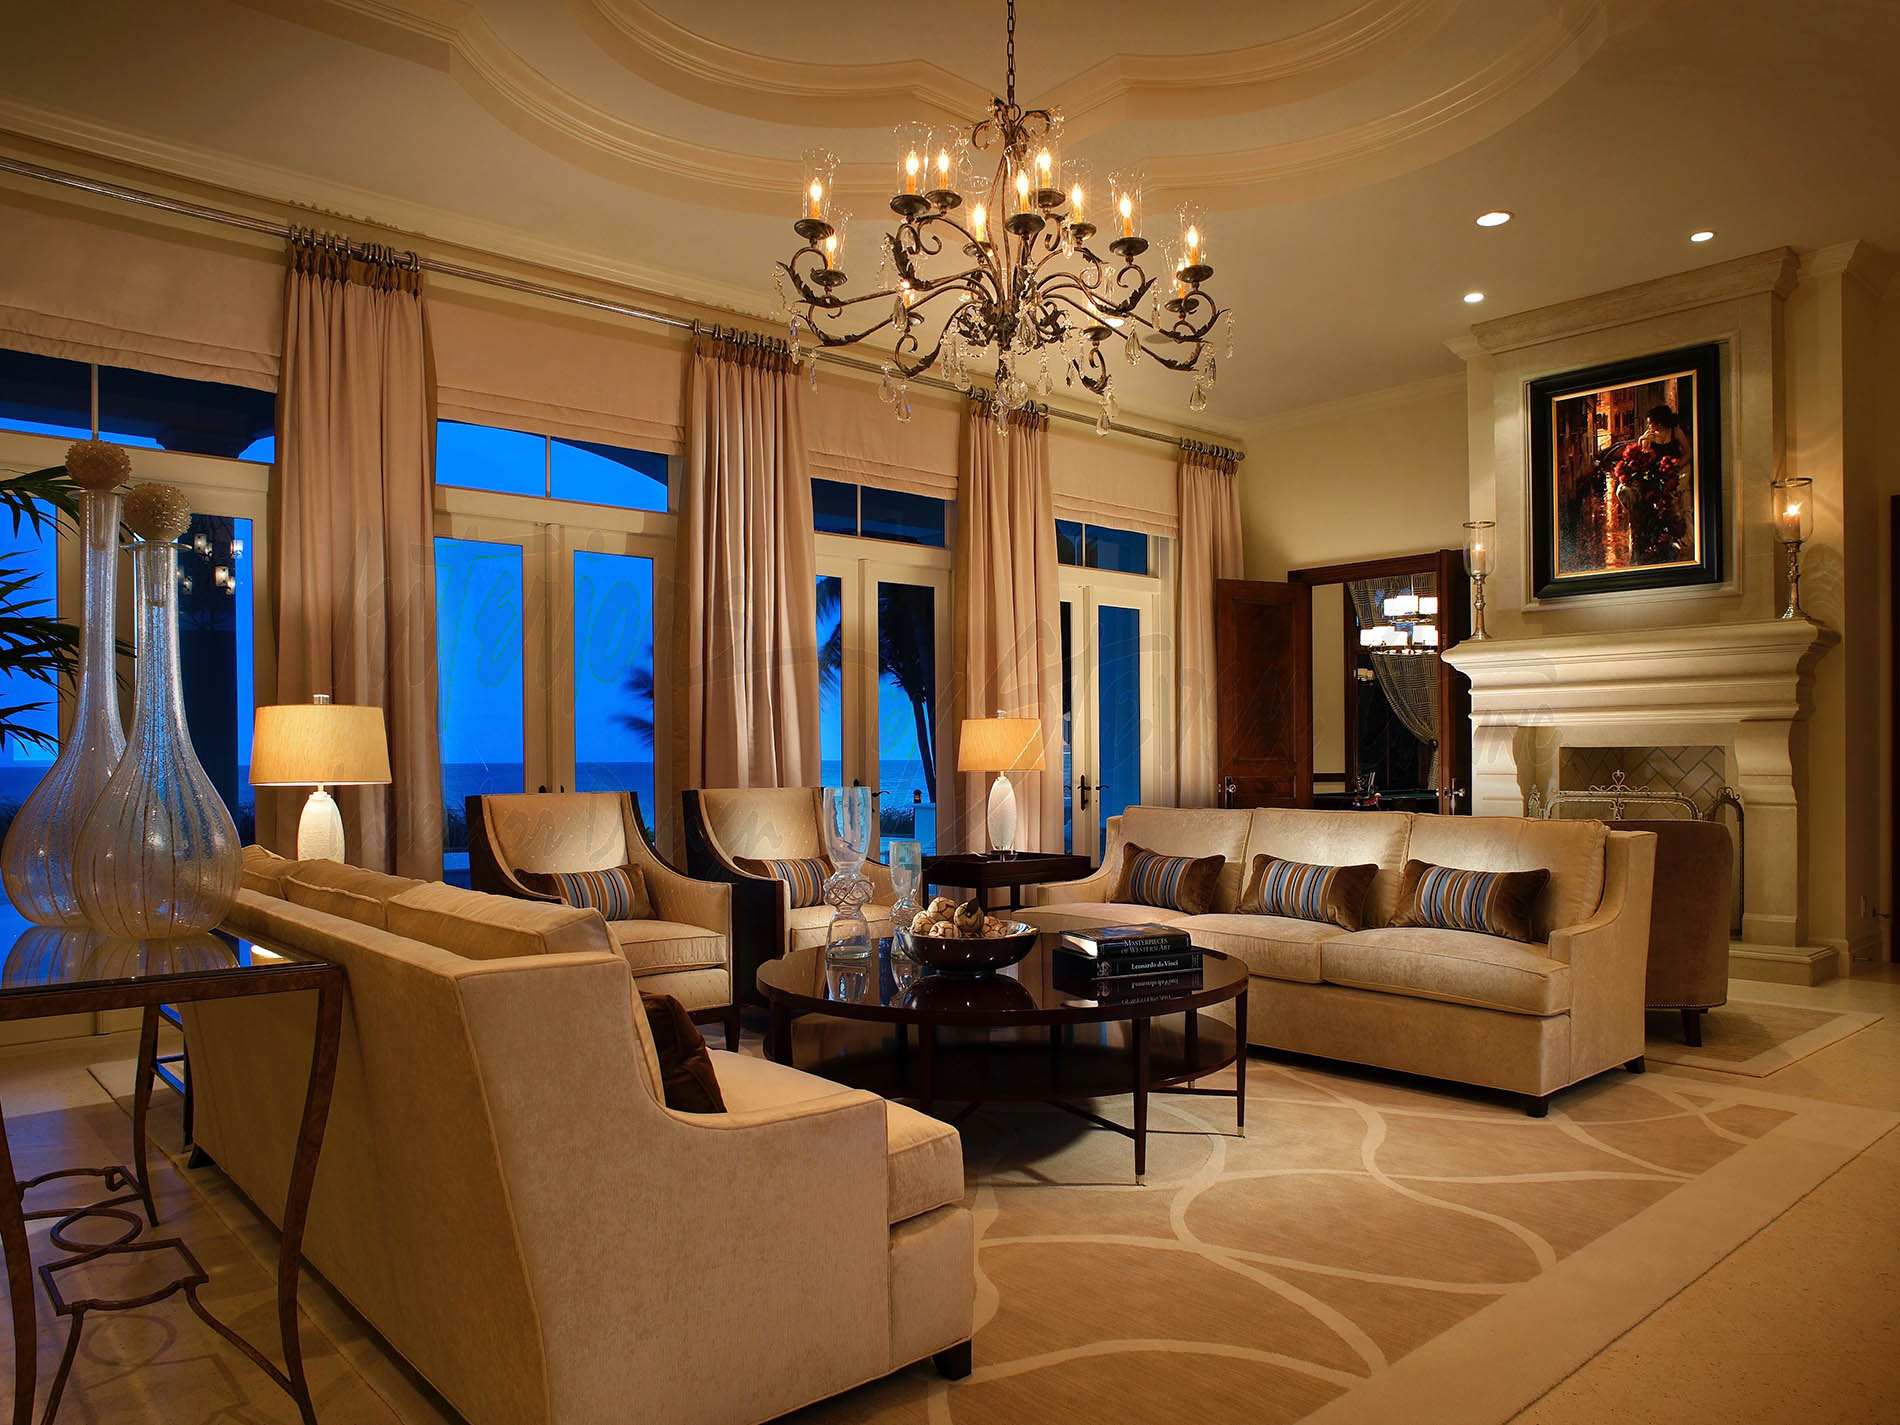 Traditional Interior Design By Ownby: The Characteristics Of Traditional Interior Design Style